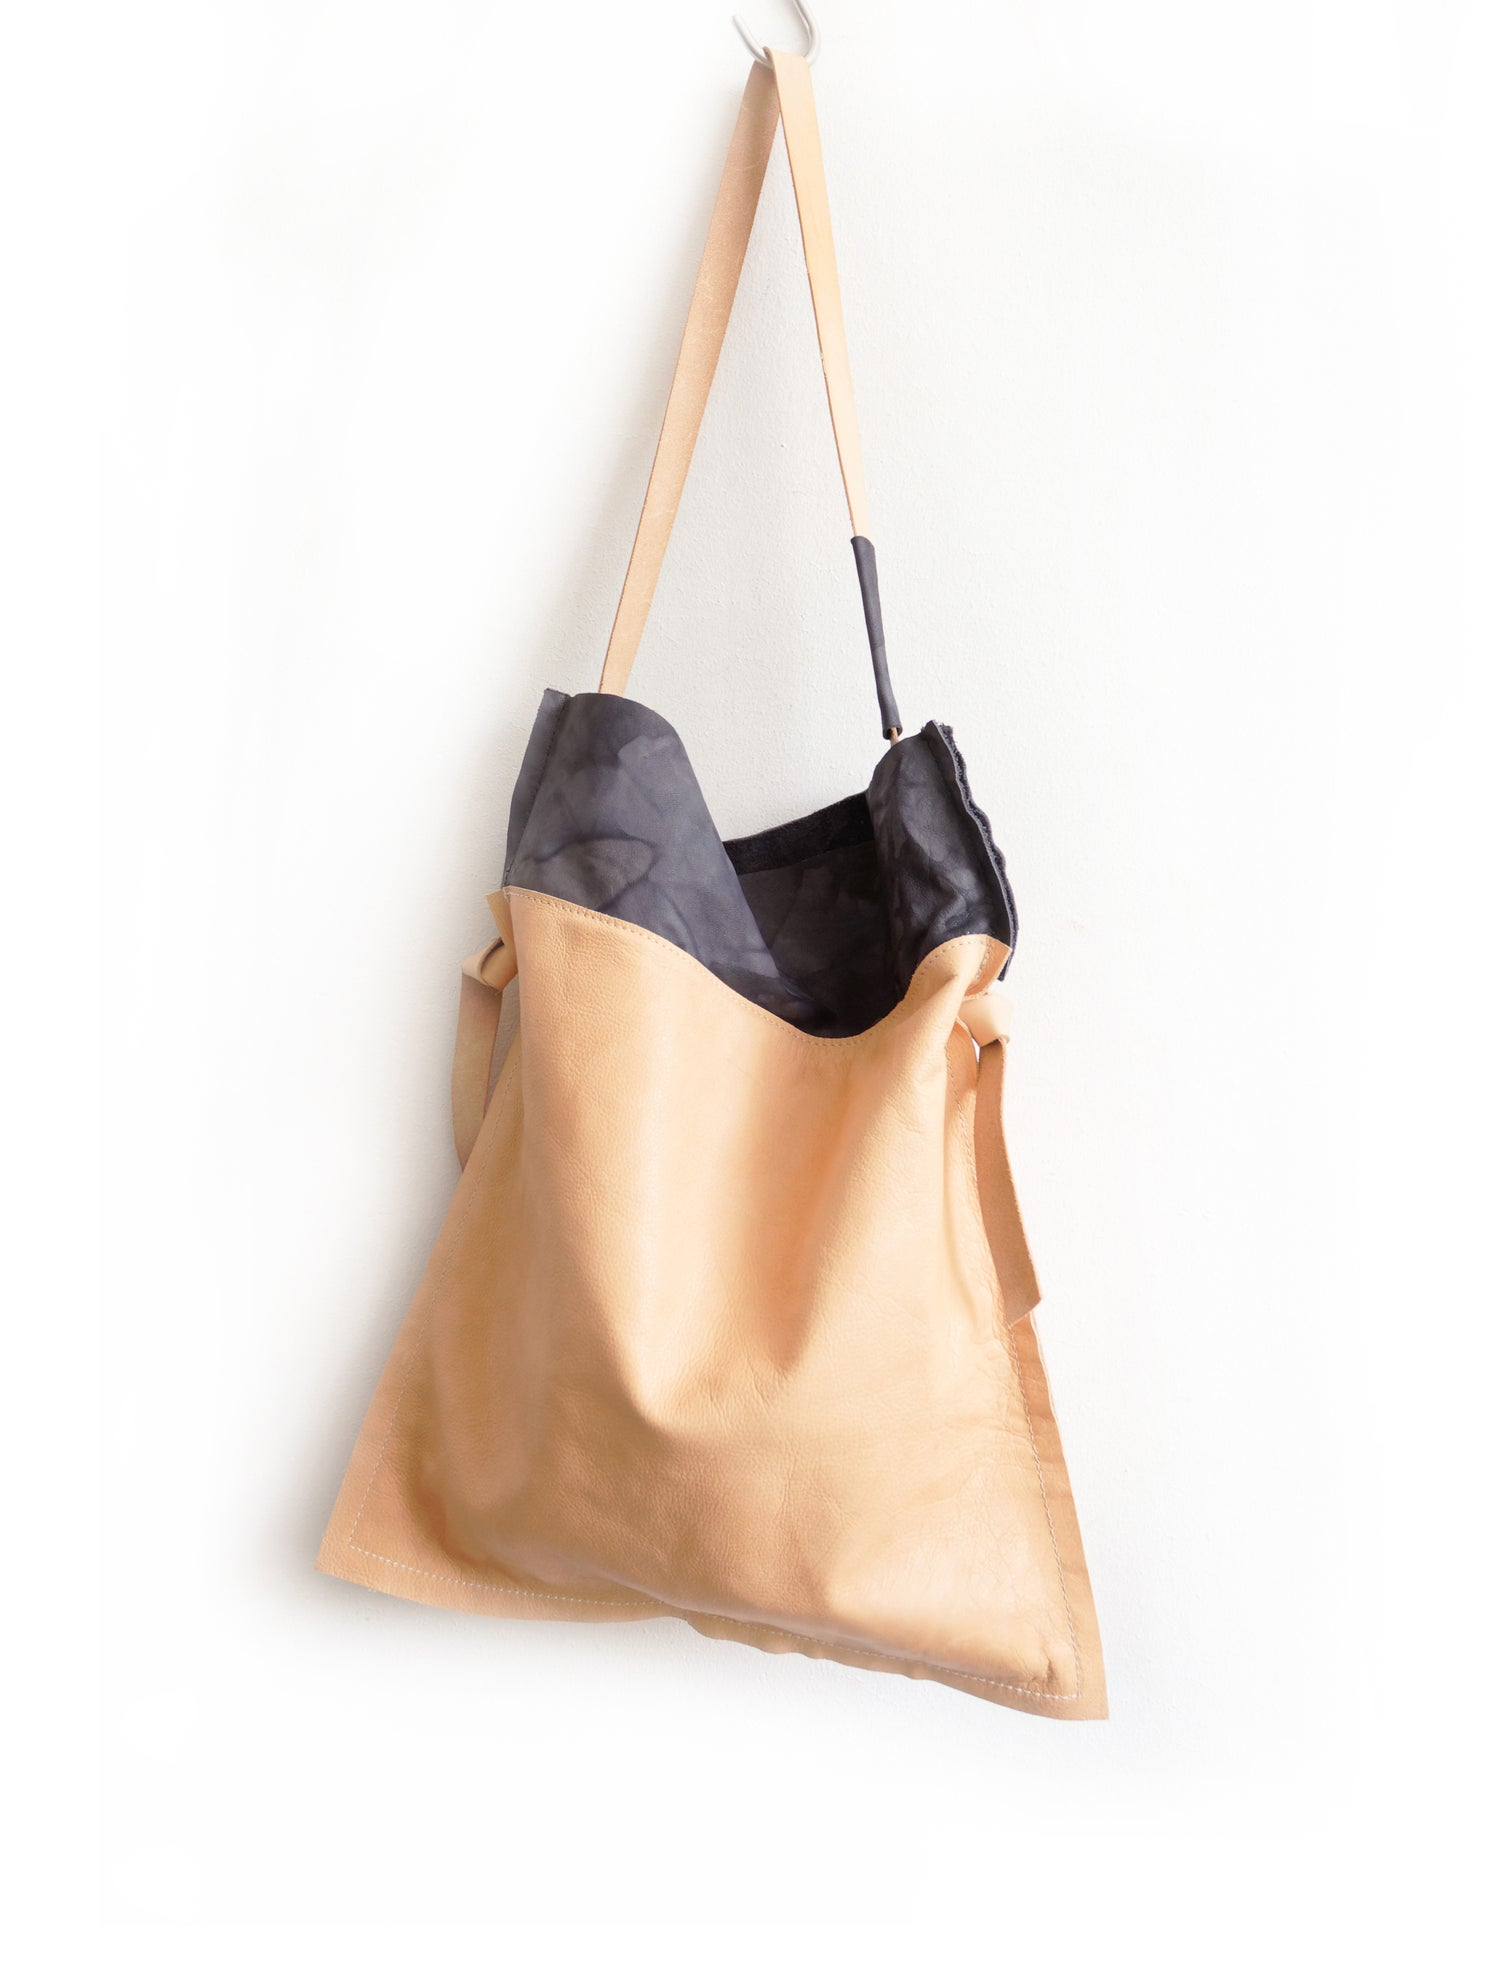 Image of Flat Constructed ShoulderBag, Nude Leather Tote Bag with Blue Handdyed Trim